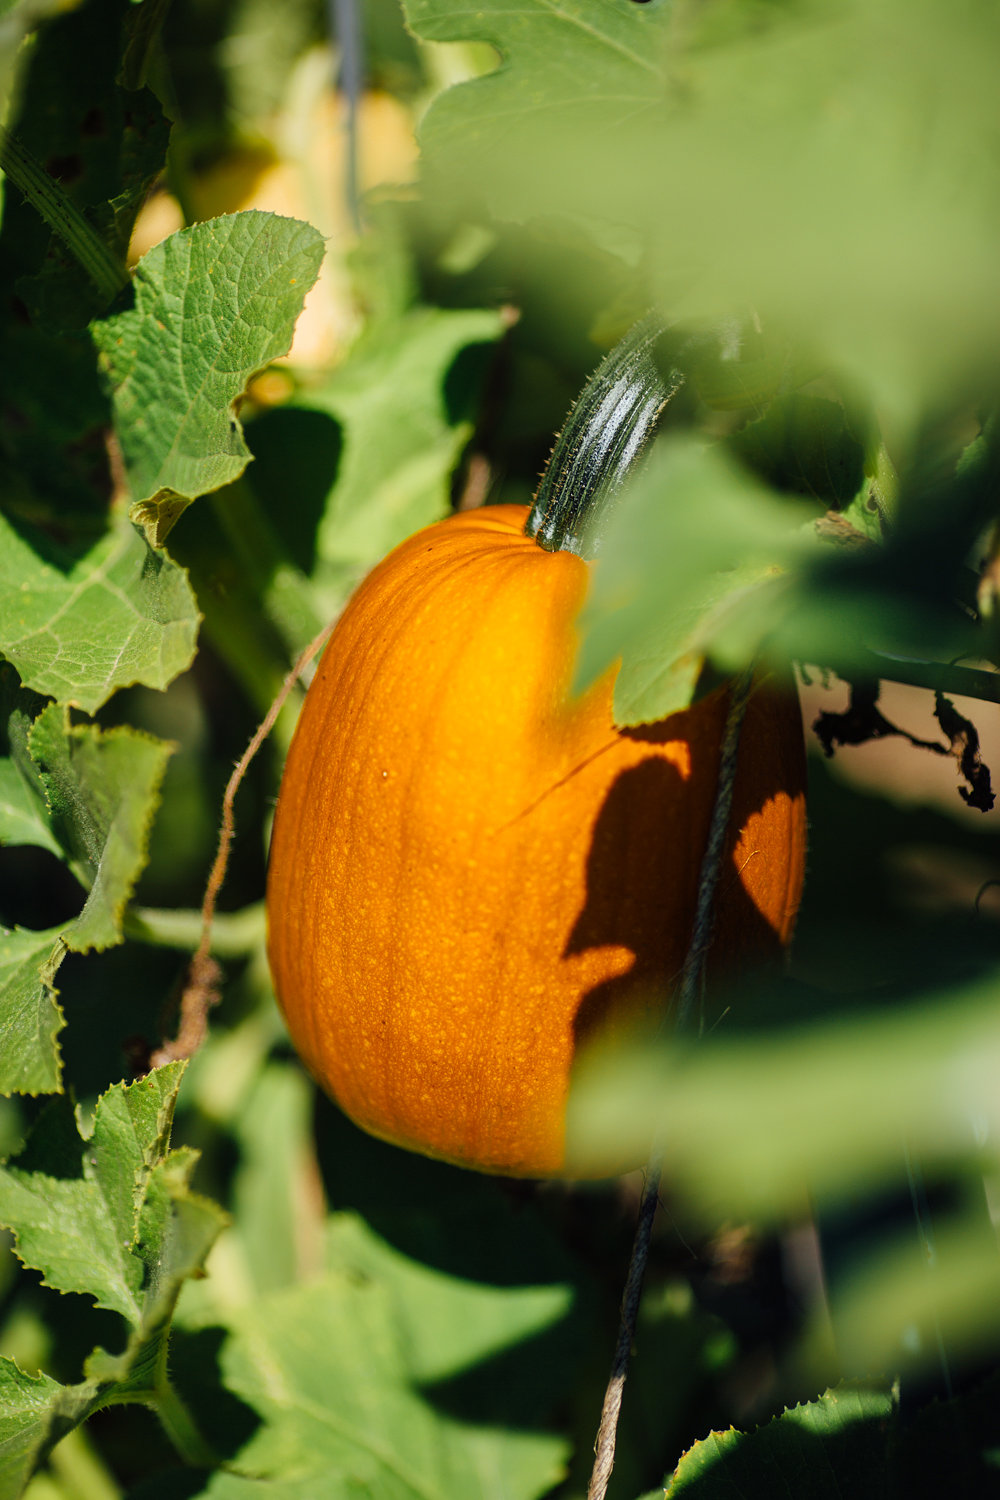 Sugar pumpkins growing up and supported by a trellis of cattle paneling.